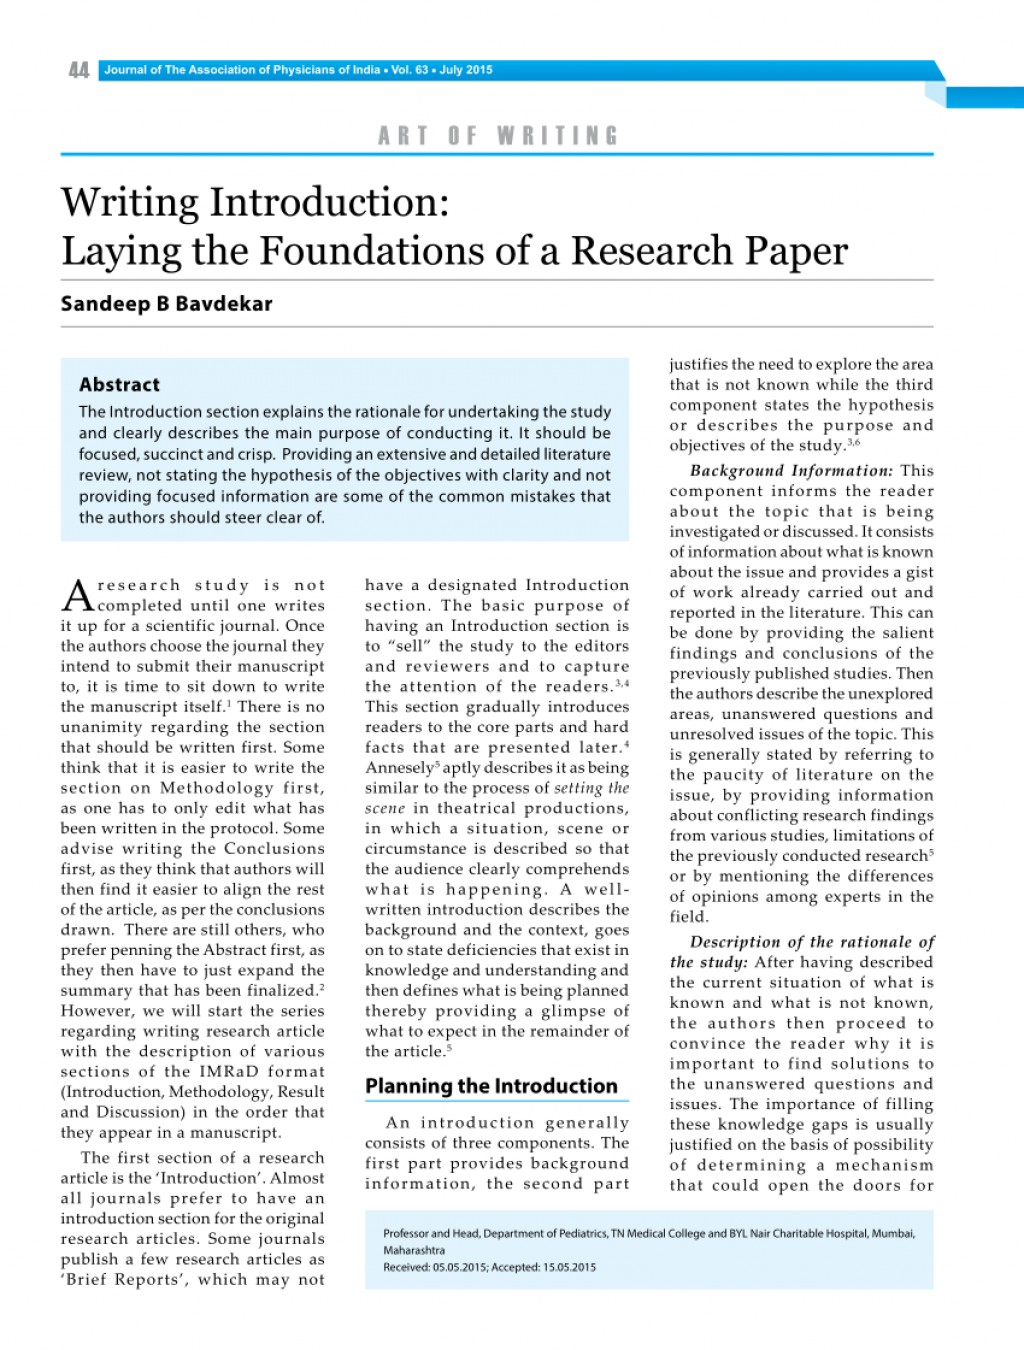 008 Largepreview Writing Research Paper Striking A Introduction Scientific Tips For How To Write An Sample Pdf Large